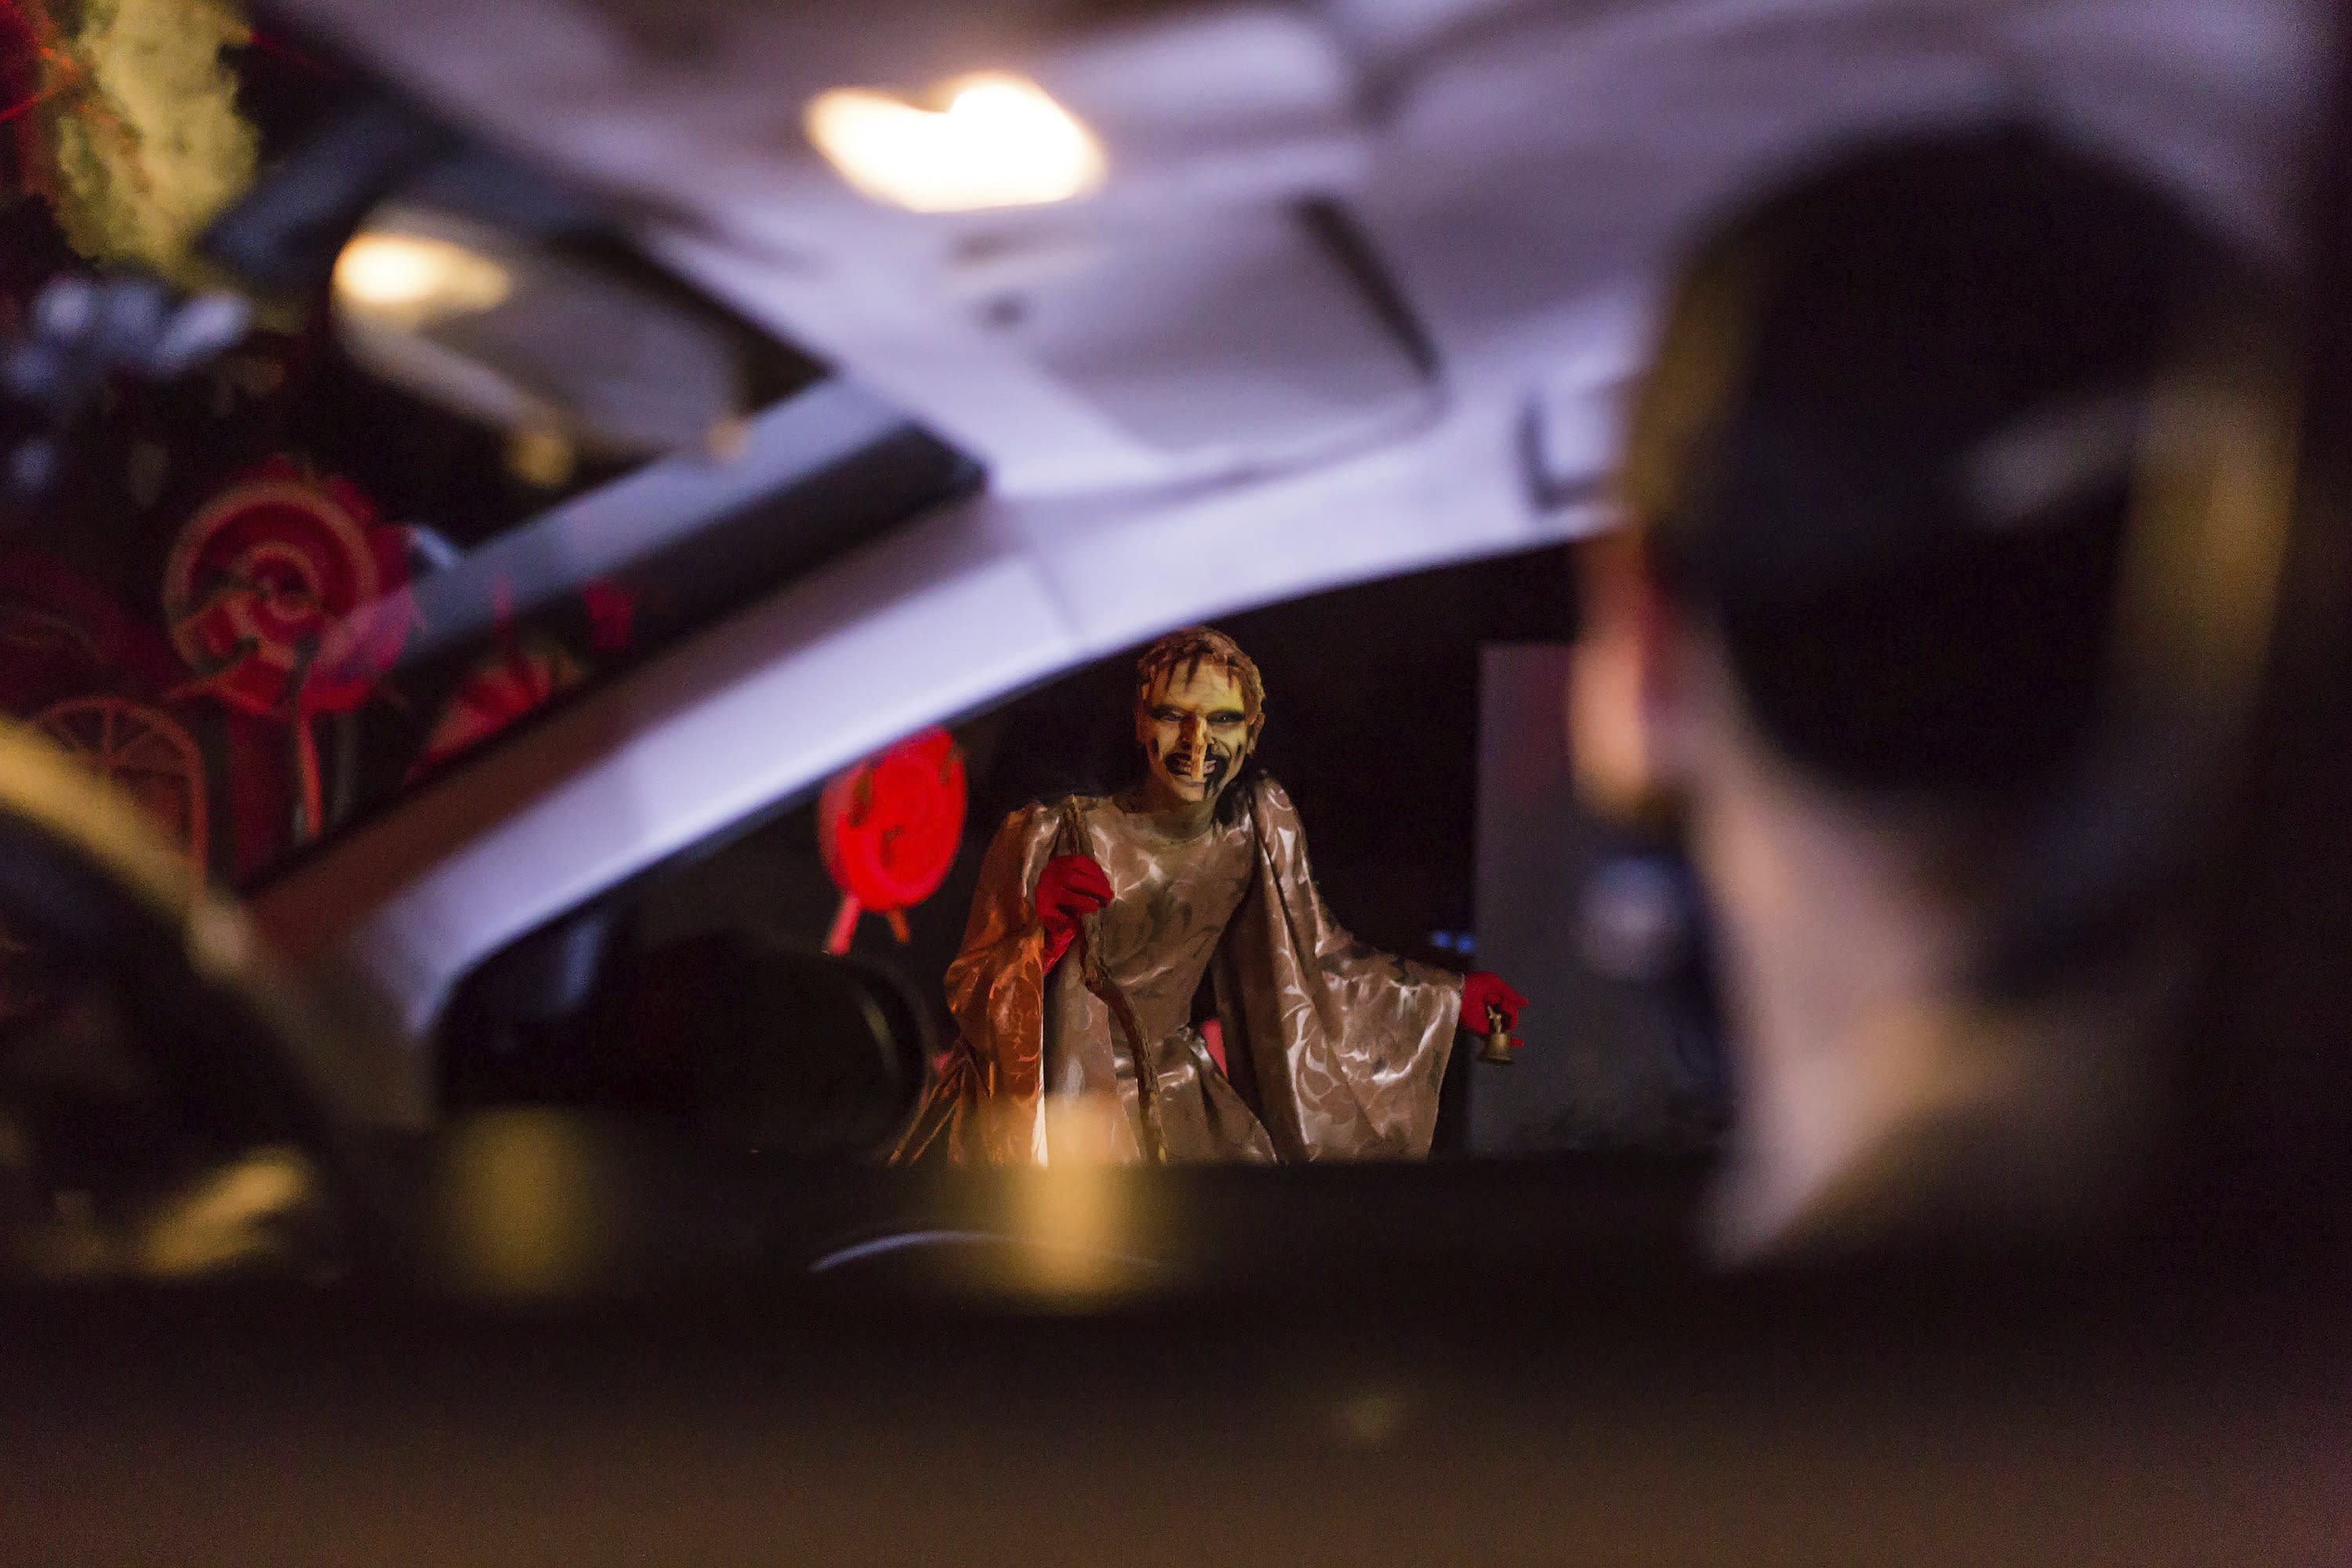 An actor dressed as a witch performs at the Hopi Hari horror theme amusement park, in the Vinhedo suburb of Sao Paulo, Brazil, Friday, Sept. 4, 2020. Due to the restrictions caused by COVID-19, the park created a drive-thru tour that allow the public to enjoy the experience by car. (AP Photo/Carla Carniel)